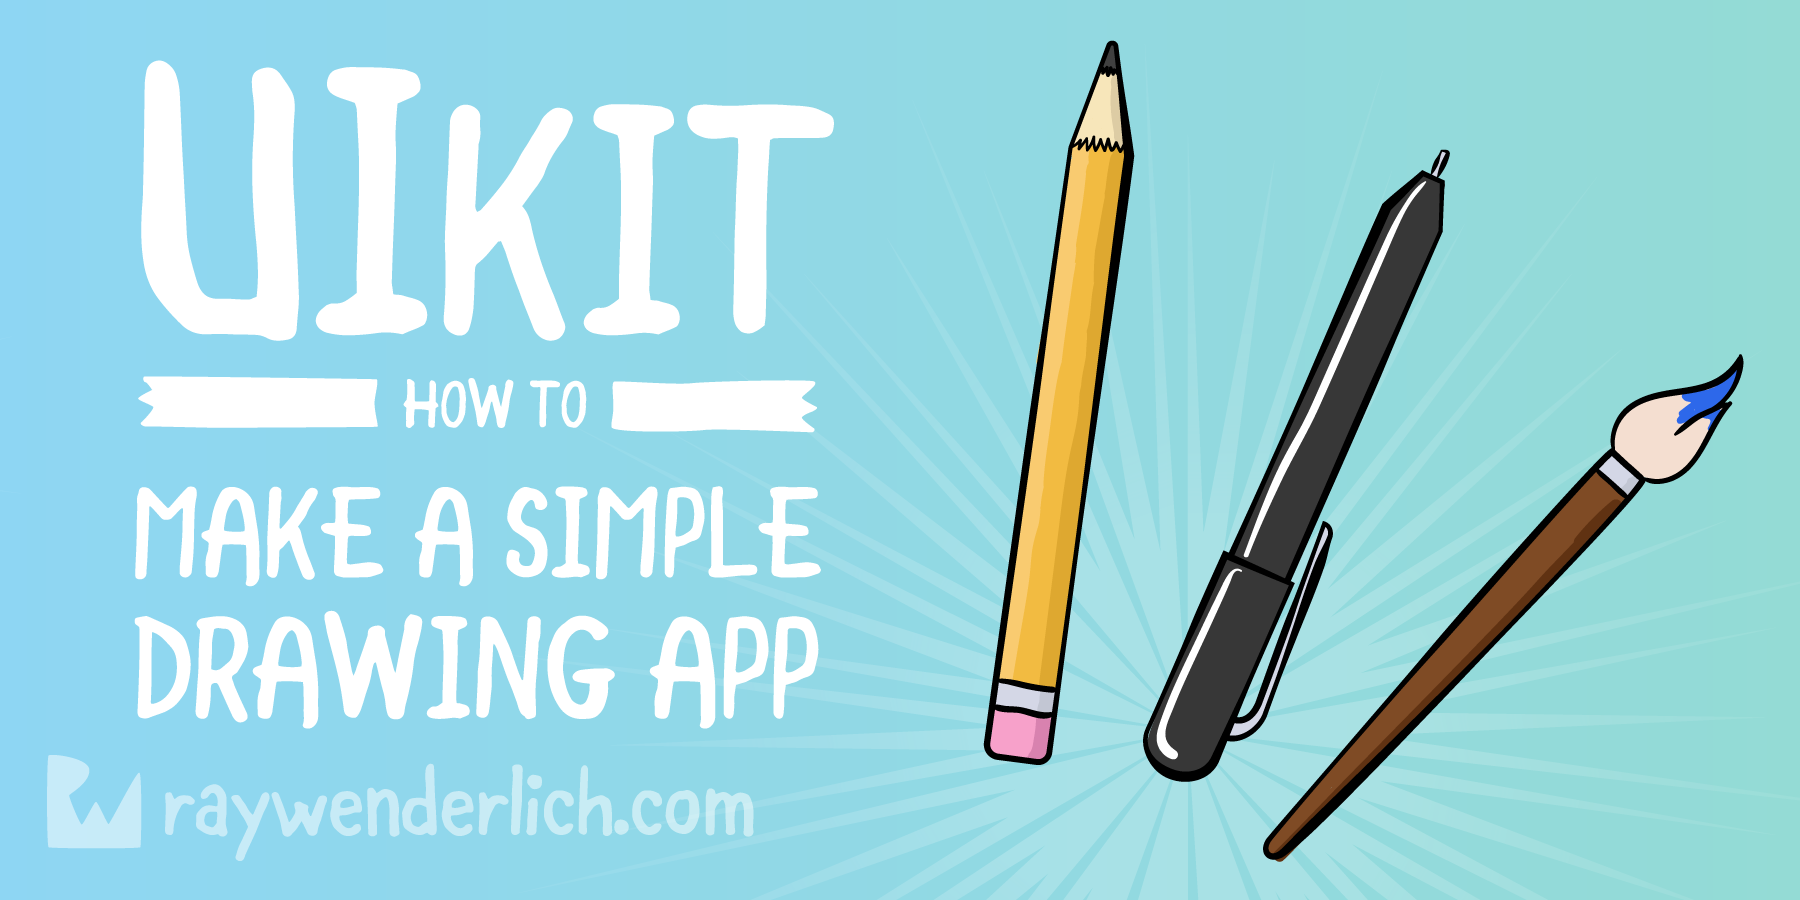 UIKit Drawing Tutorial: How to Make a Simple Drawing App